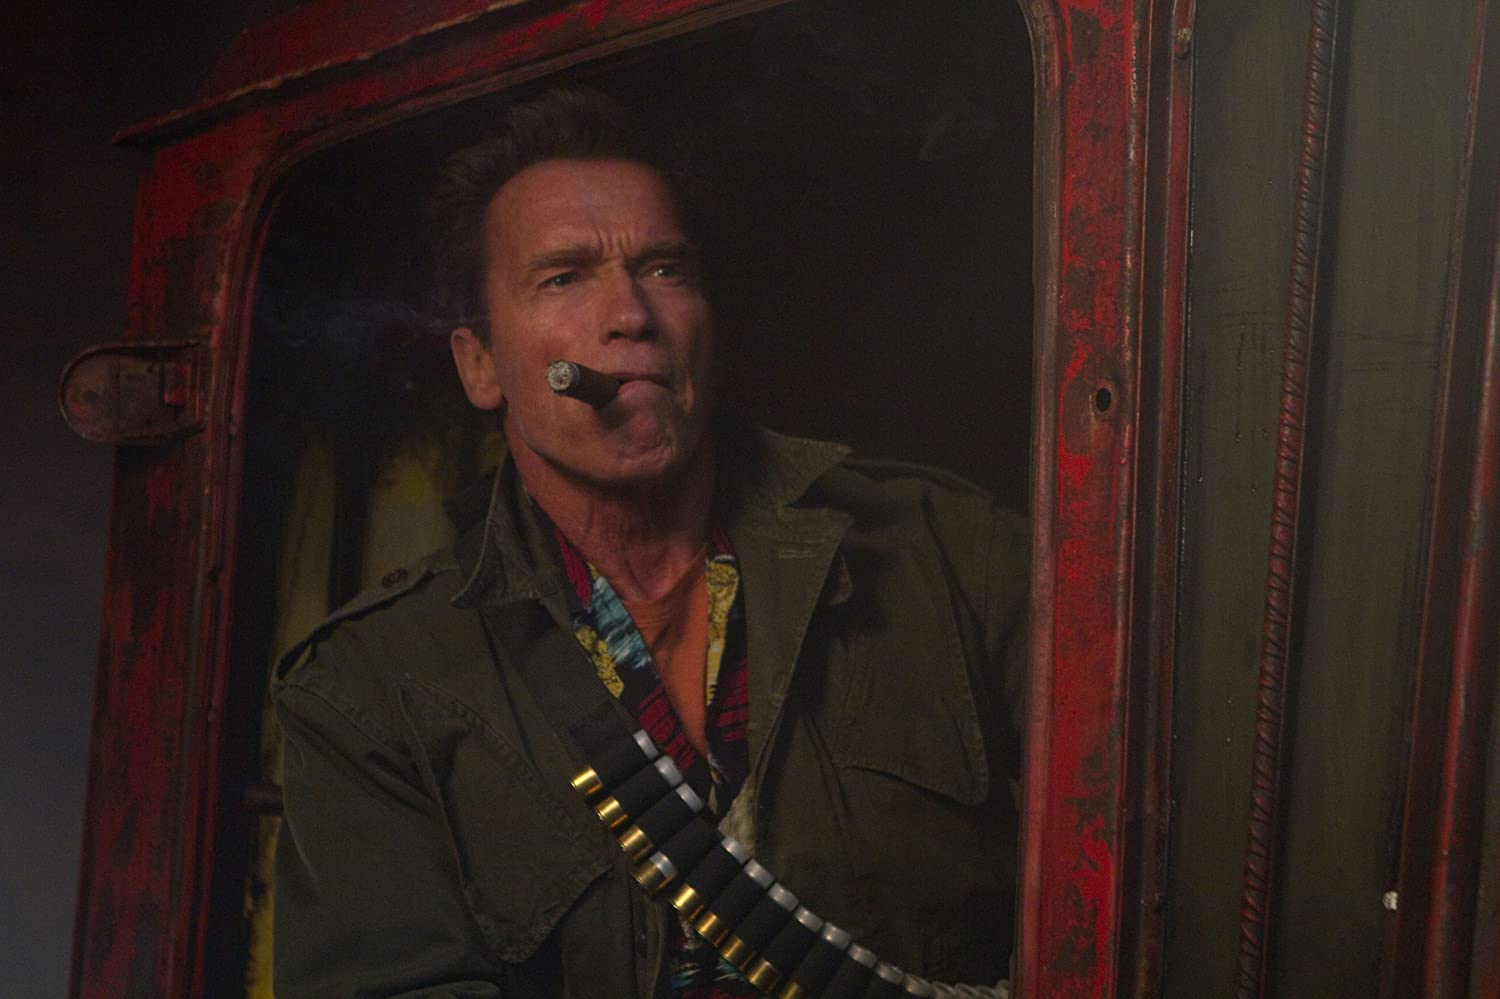 Arnold Schwarzenegger in The Expendables 2 (2012)